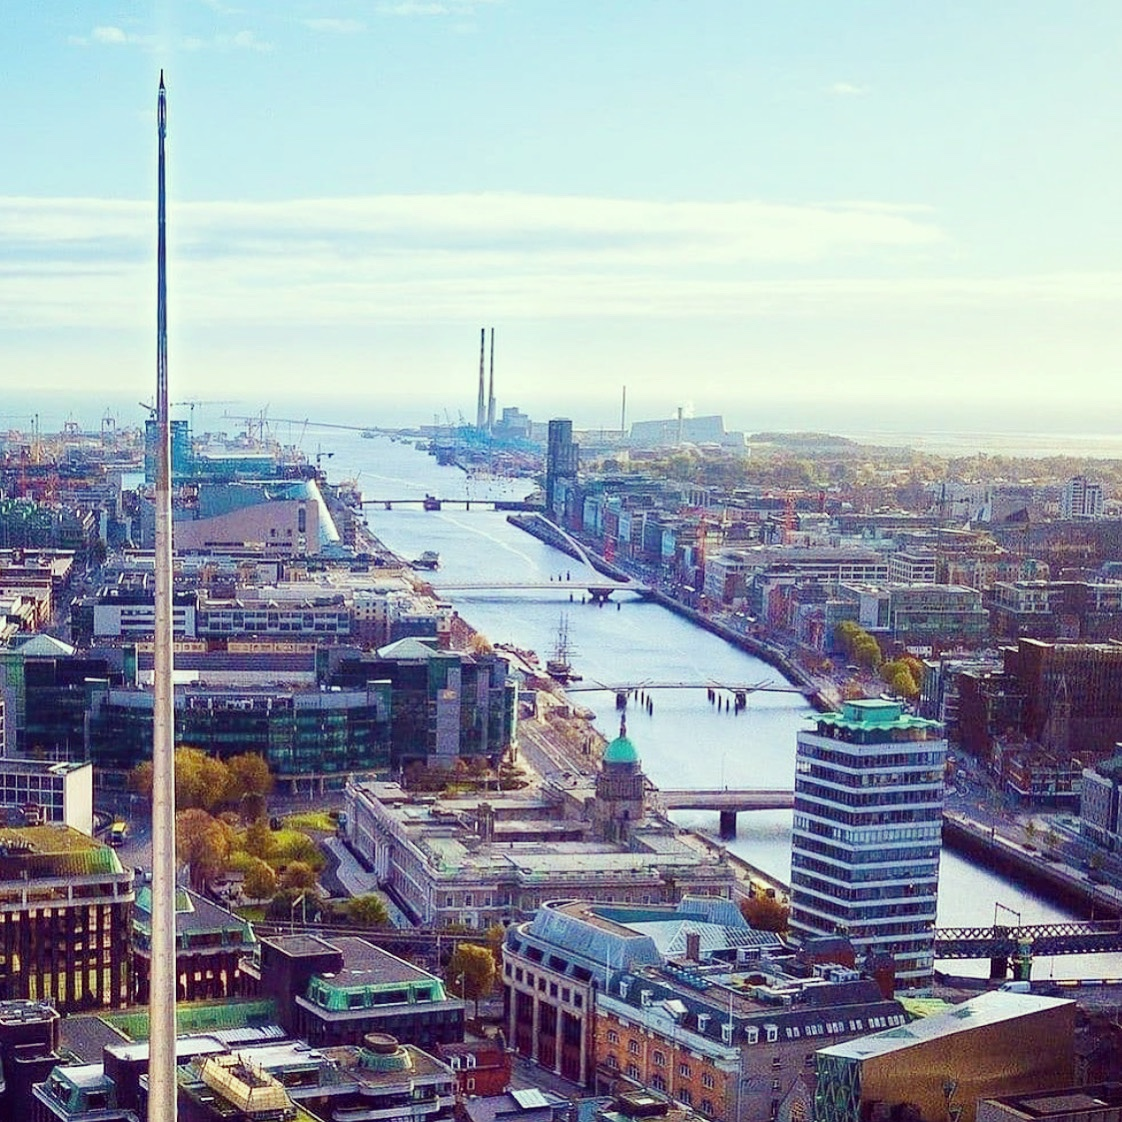 Why Dublin for High End Luxury Travel And Events? – Wallace Travel Group and Destinations Unlimited Give Us The Scope!